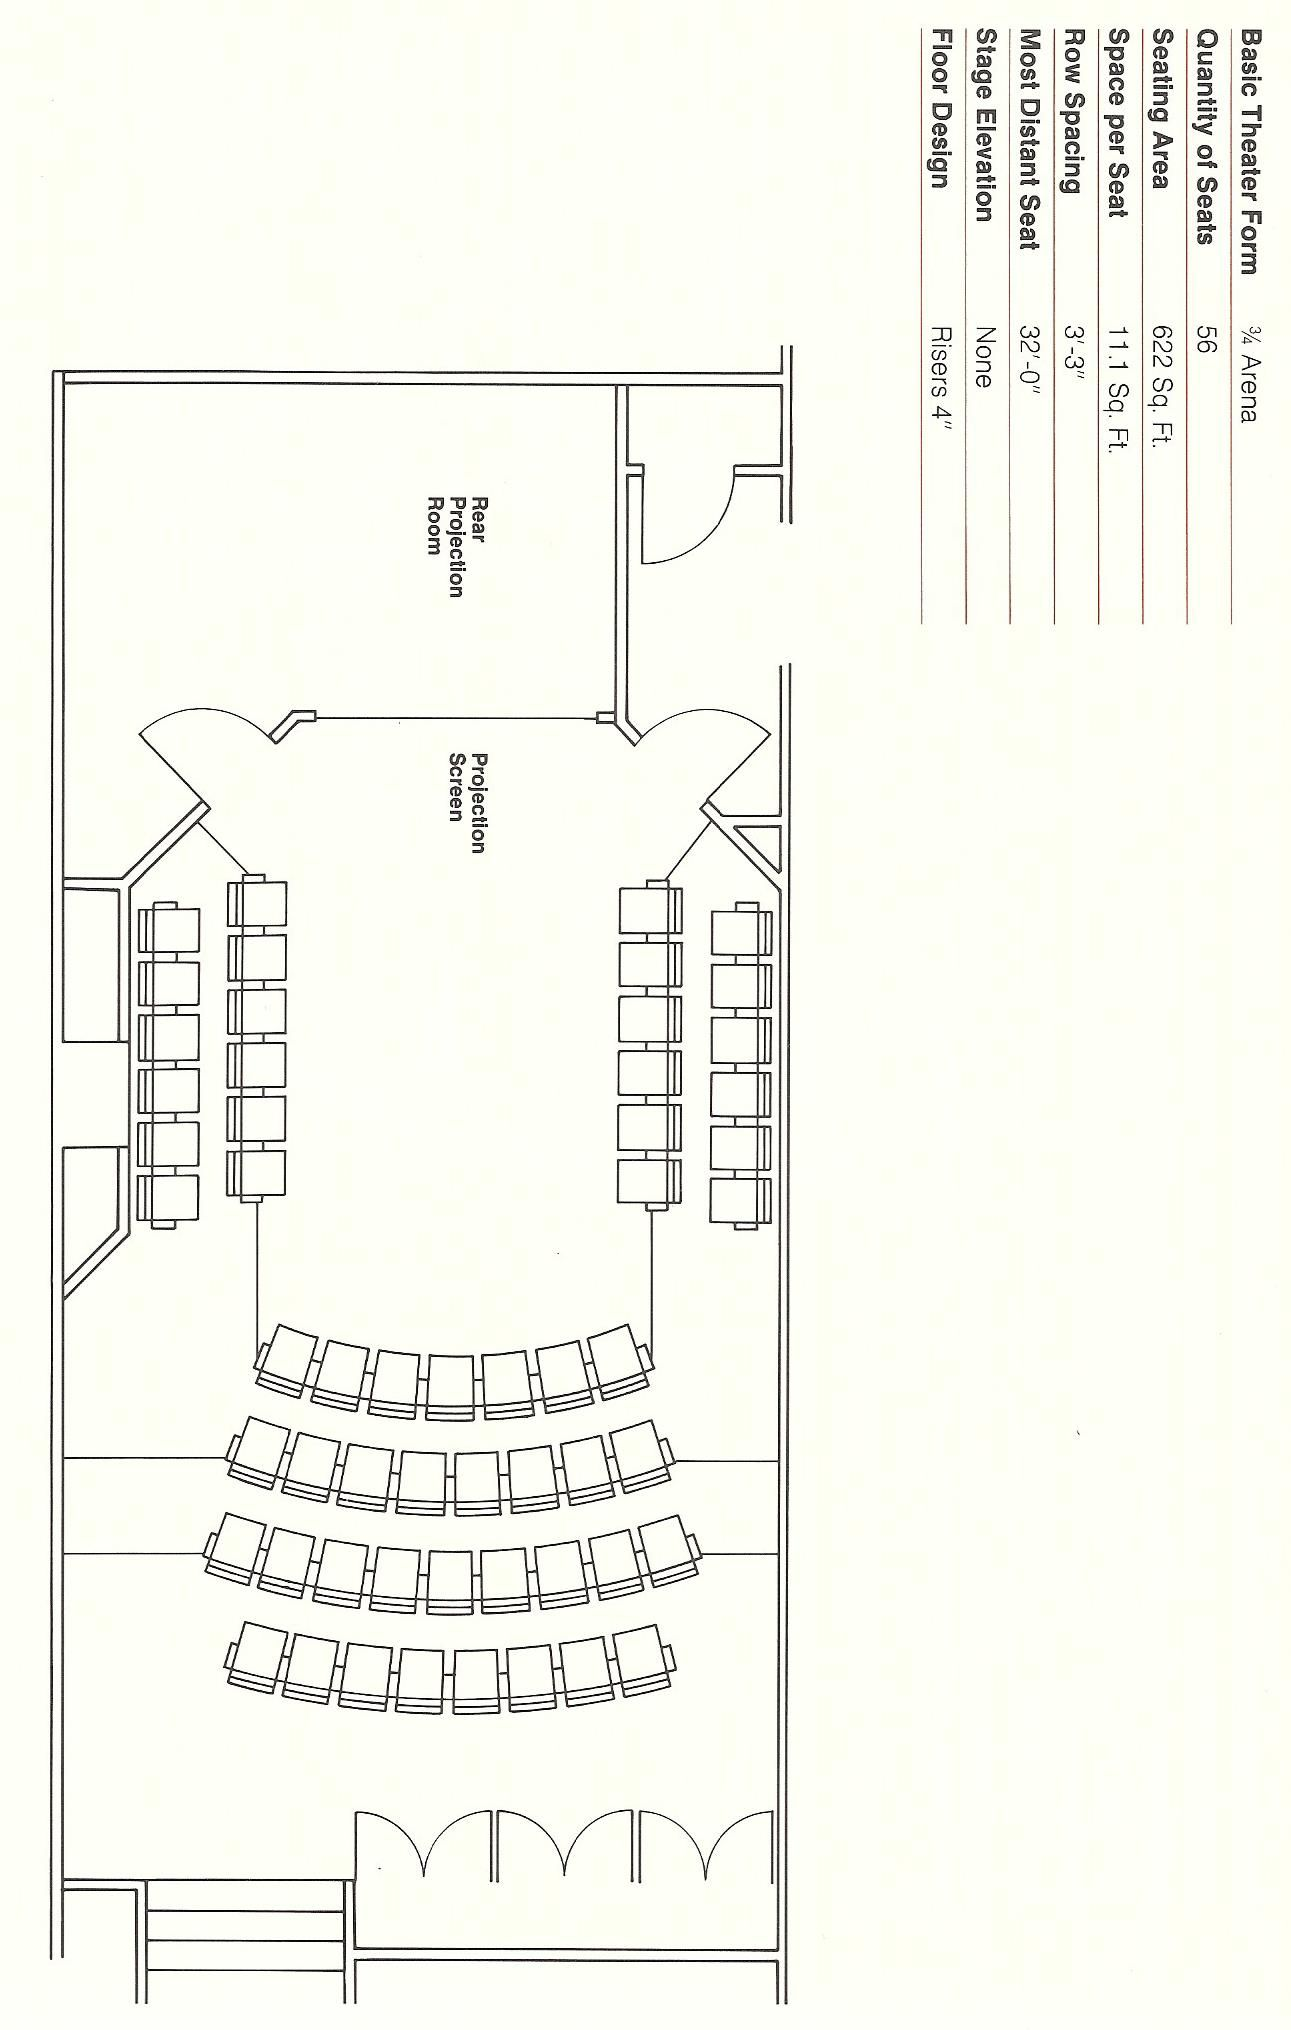 An Auditorium Seating Layout Template  Auditorium  Fixed